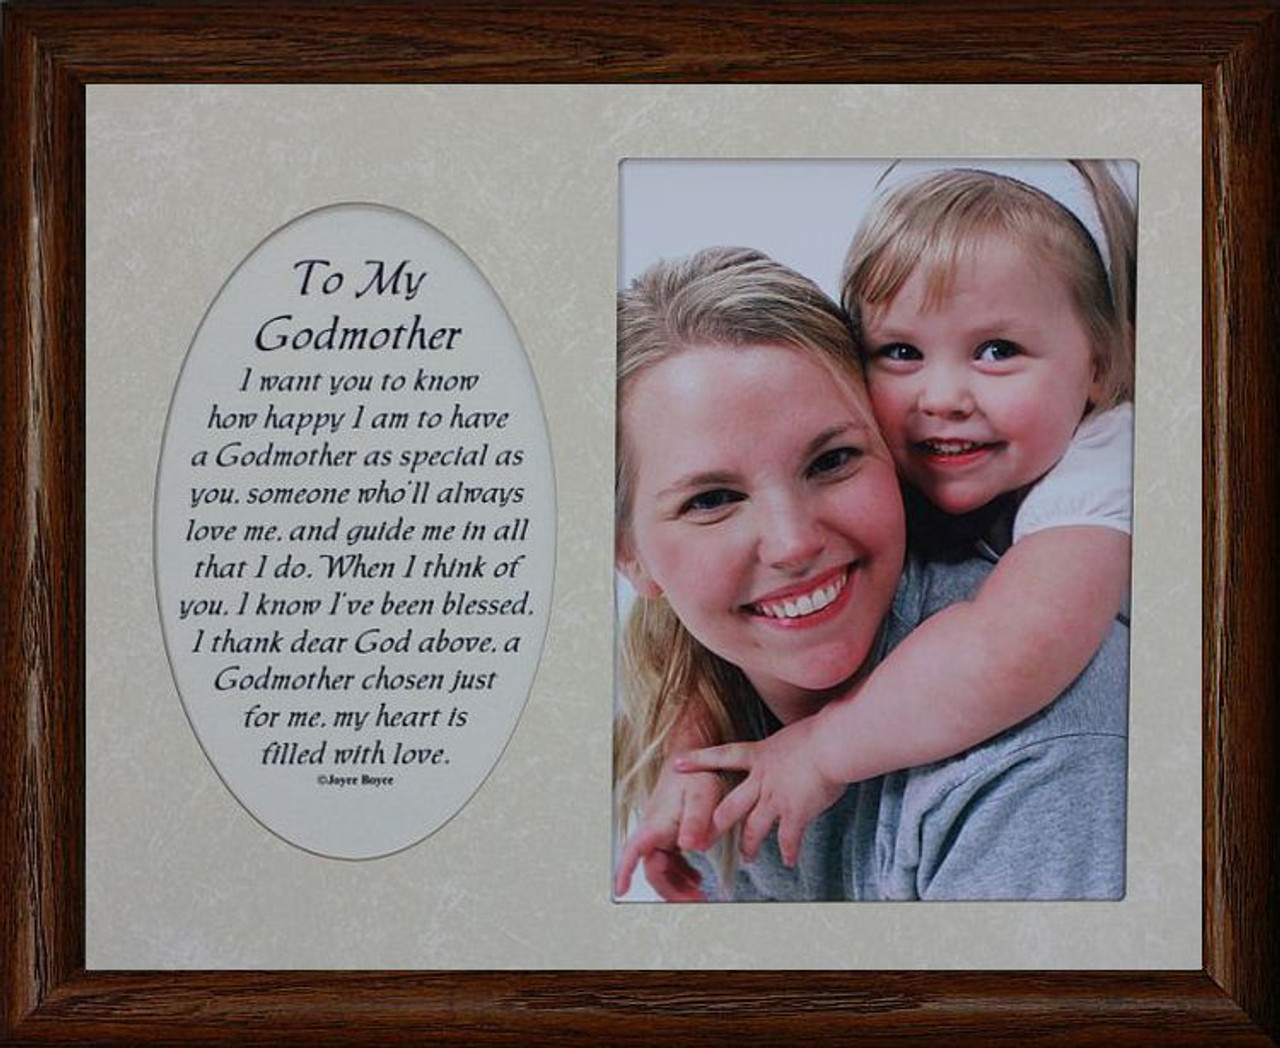 8x10 To My Godmother Photo Poetry Frame Holds A Portrait 5x7